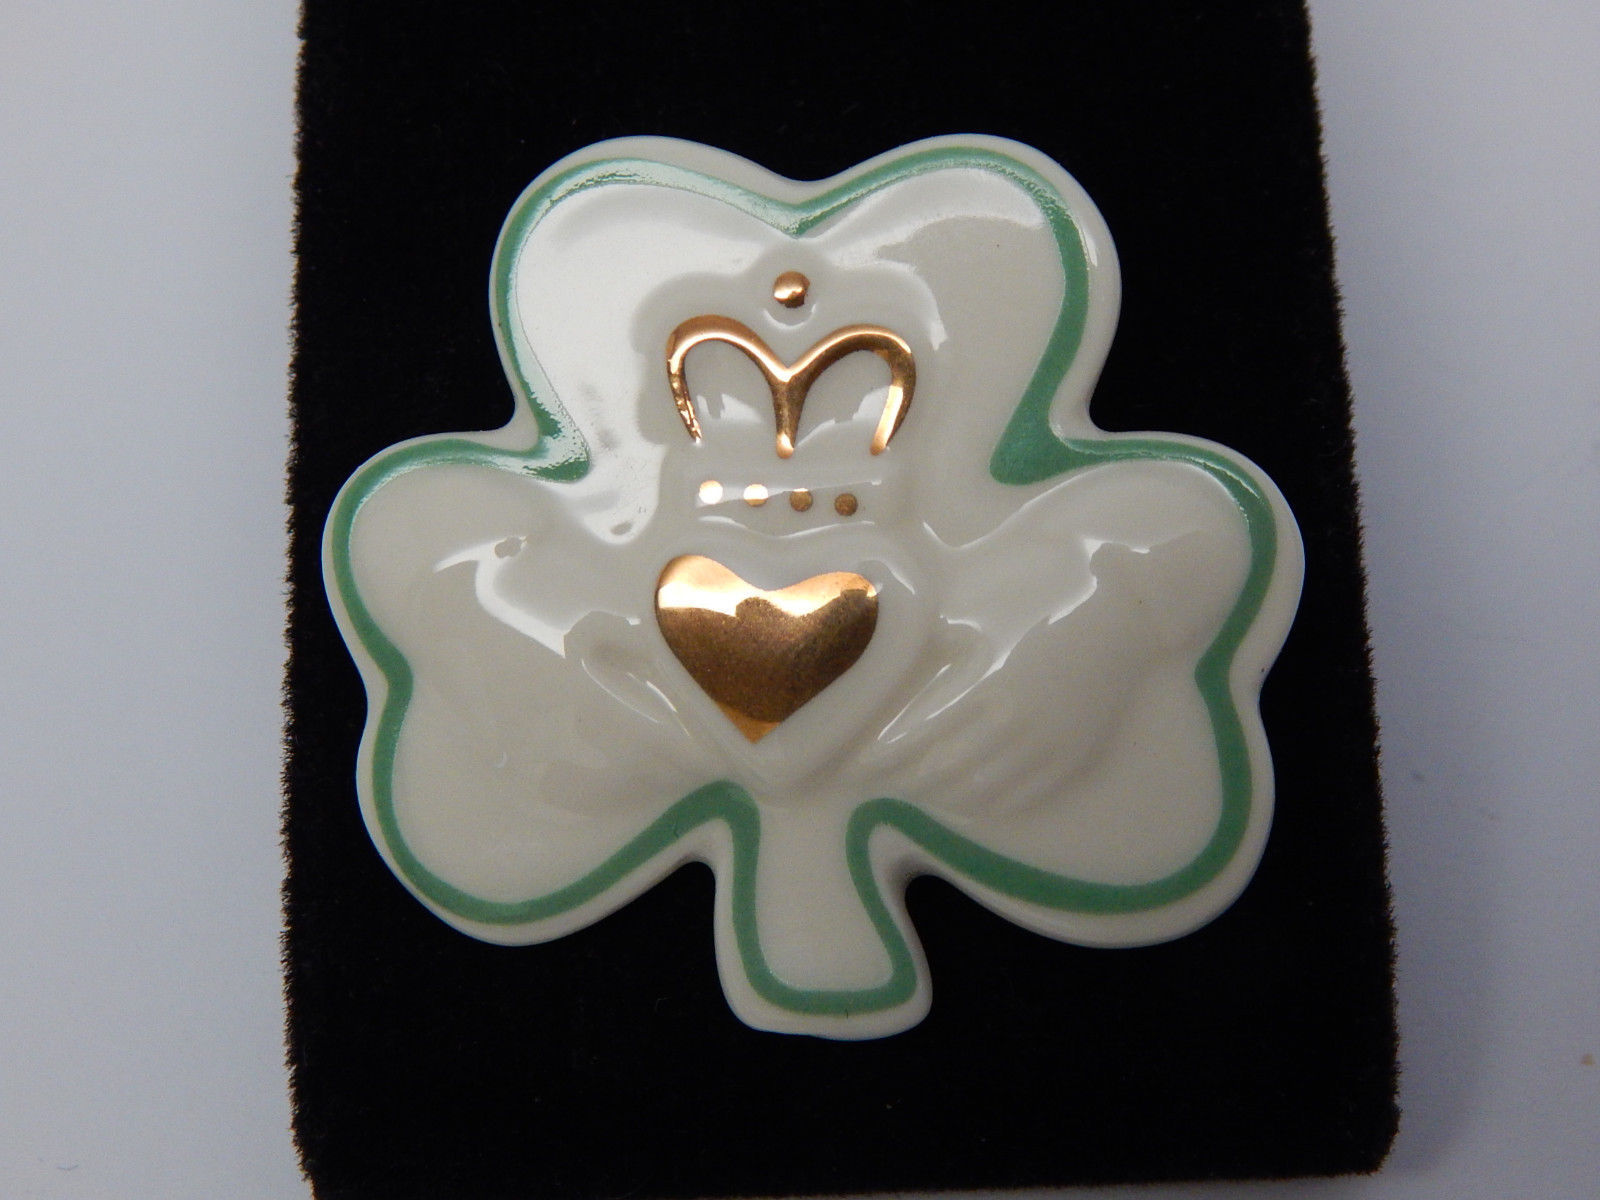 LENOX SHAMROCK BROOCH Pin with 24K Gold accents - HANDCRAFTED - FREE SHIPPING